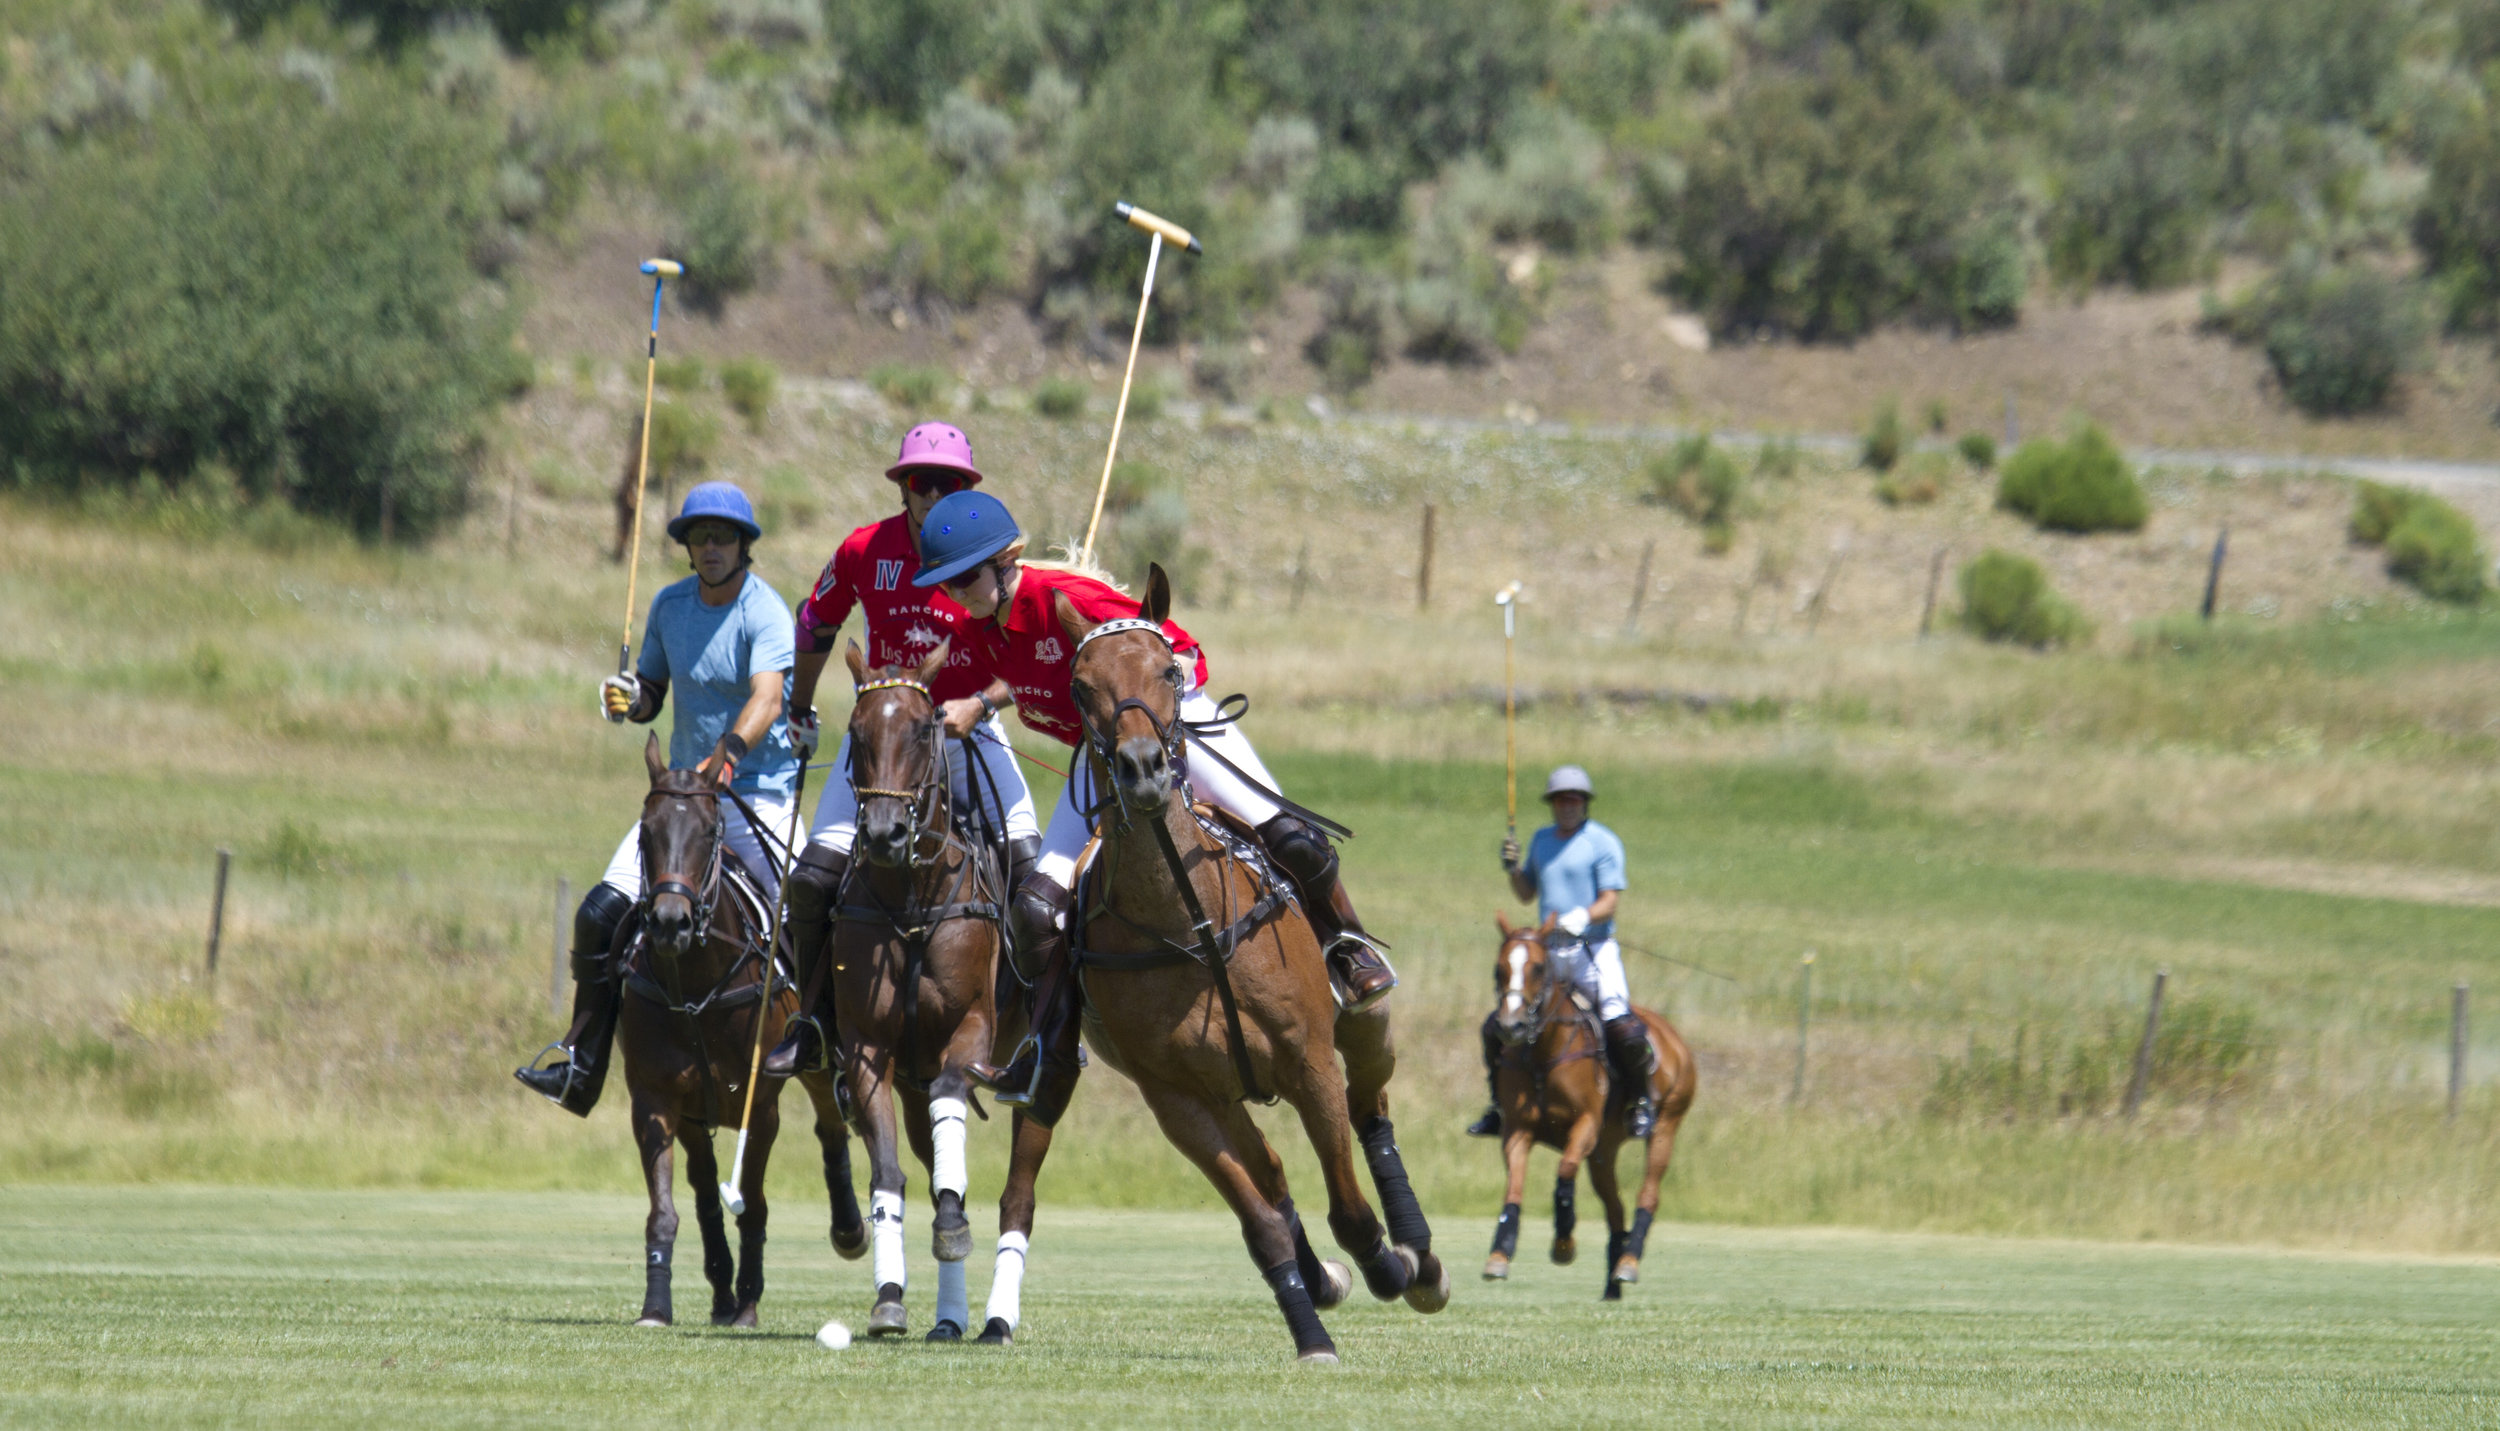 Riley Ganzi of Los Amigos Red drives downfield for her fifth chukker goal.